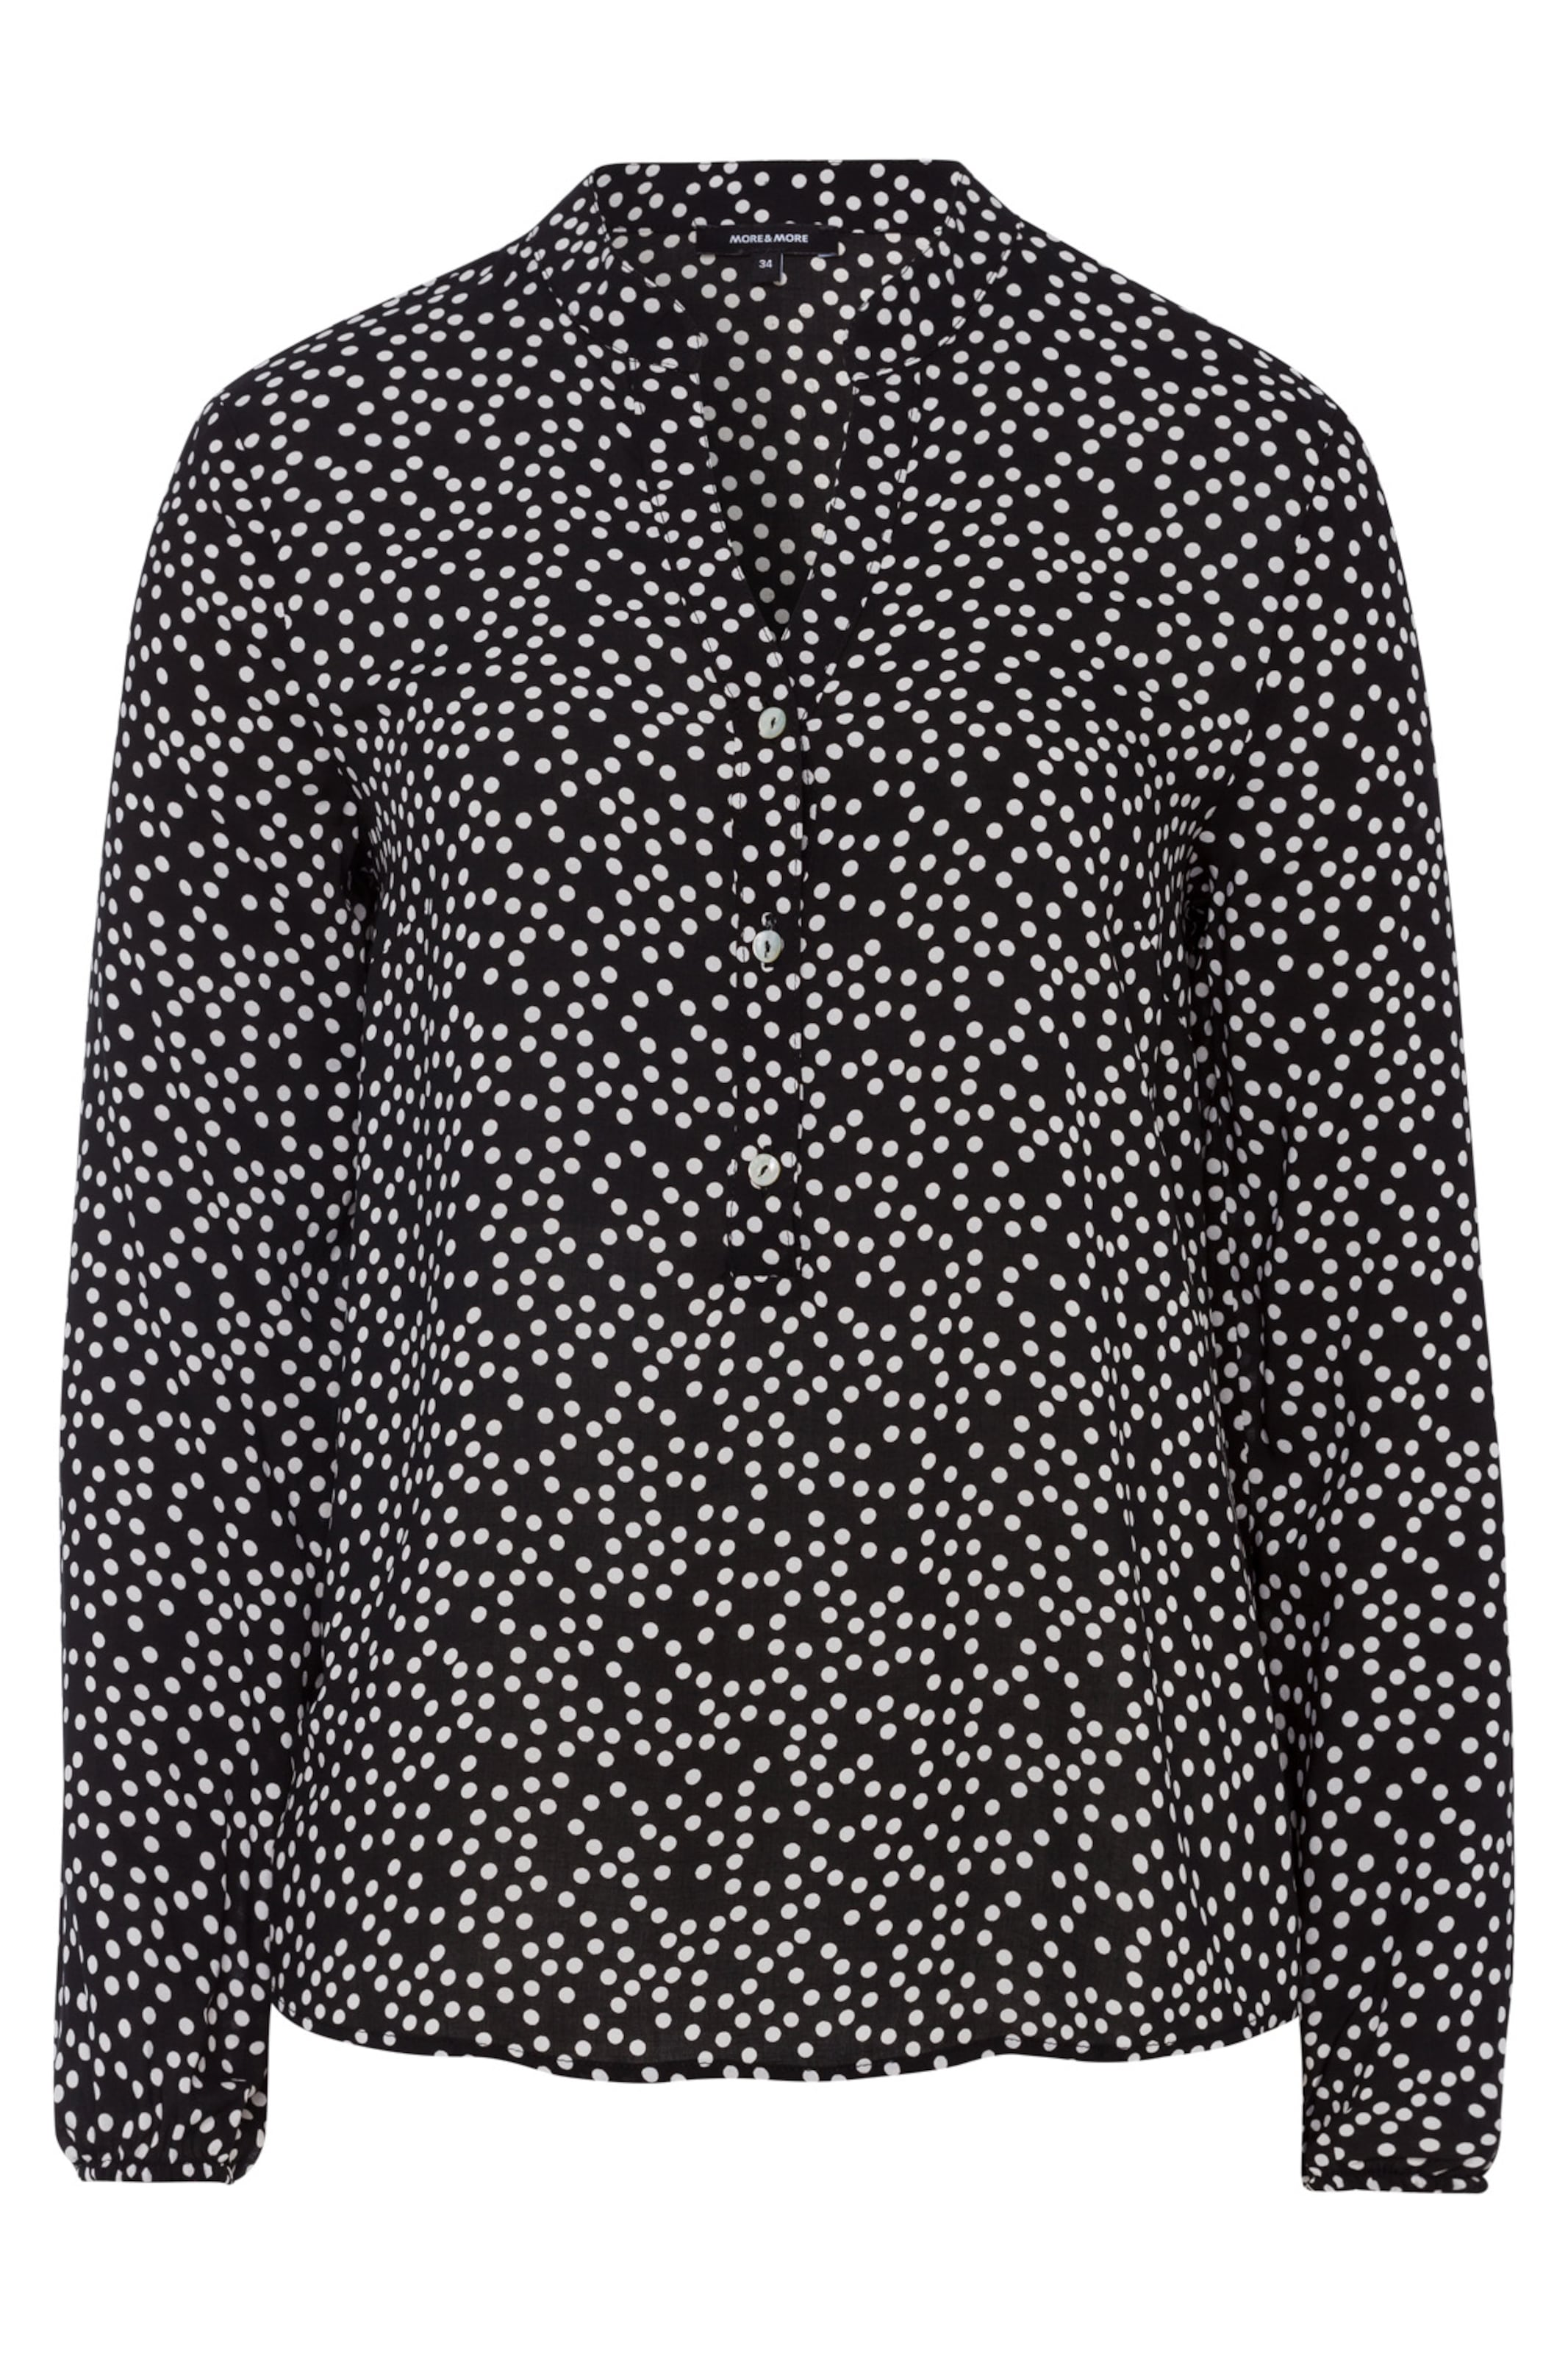 In Moreamp; Moreamp; SchwarzWeiß Bluse Bluse 7gYbfy6